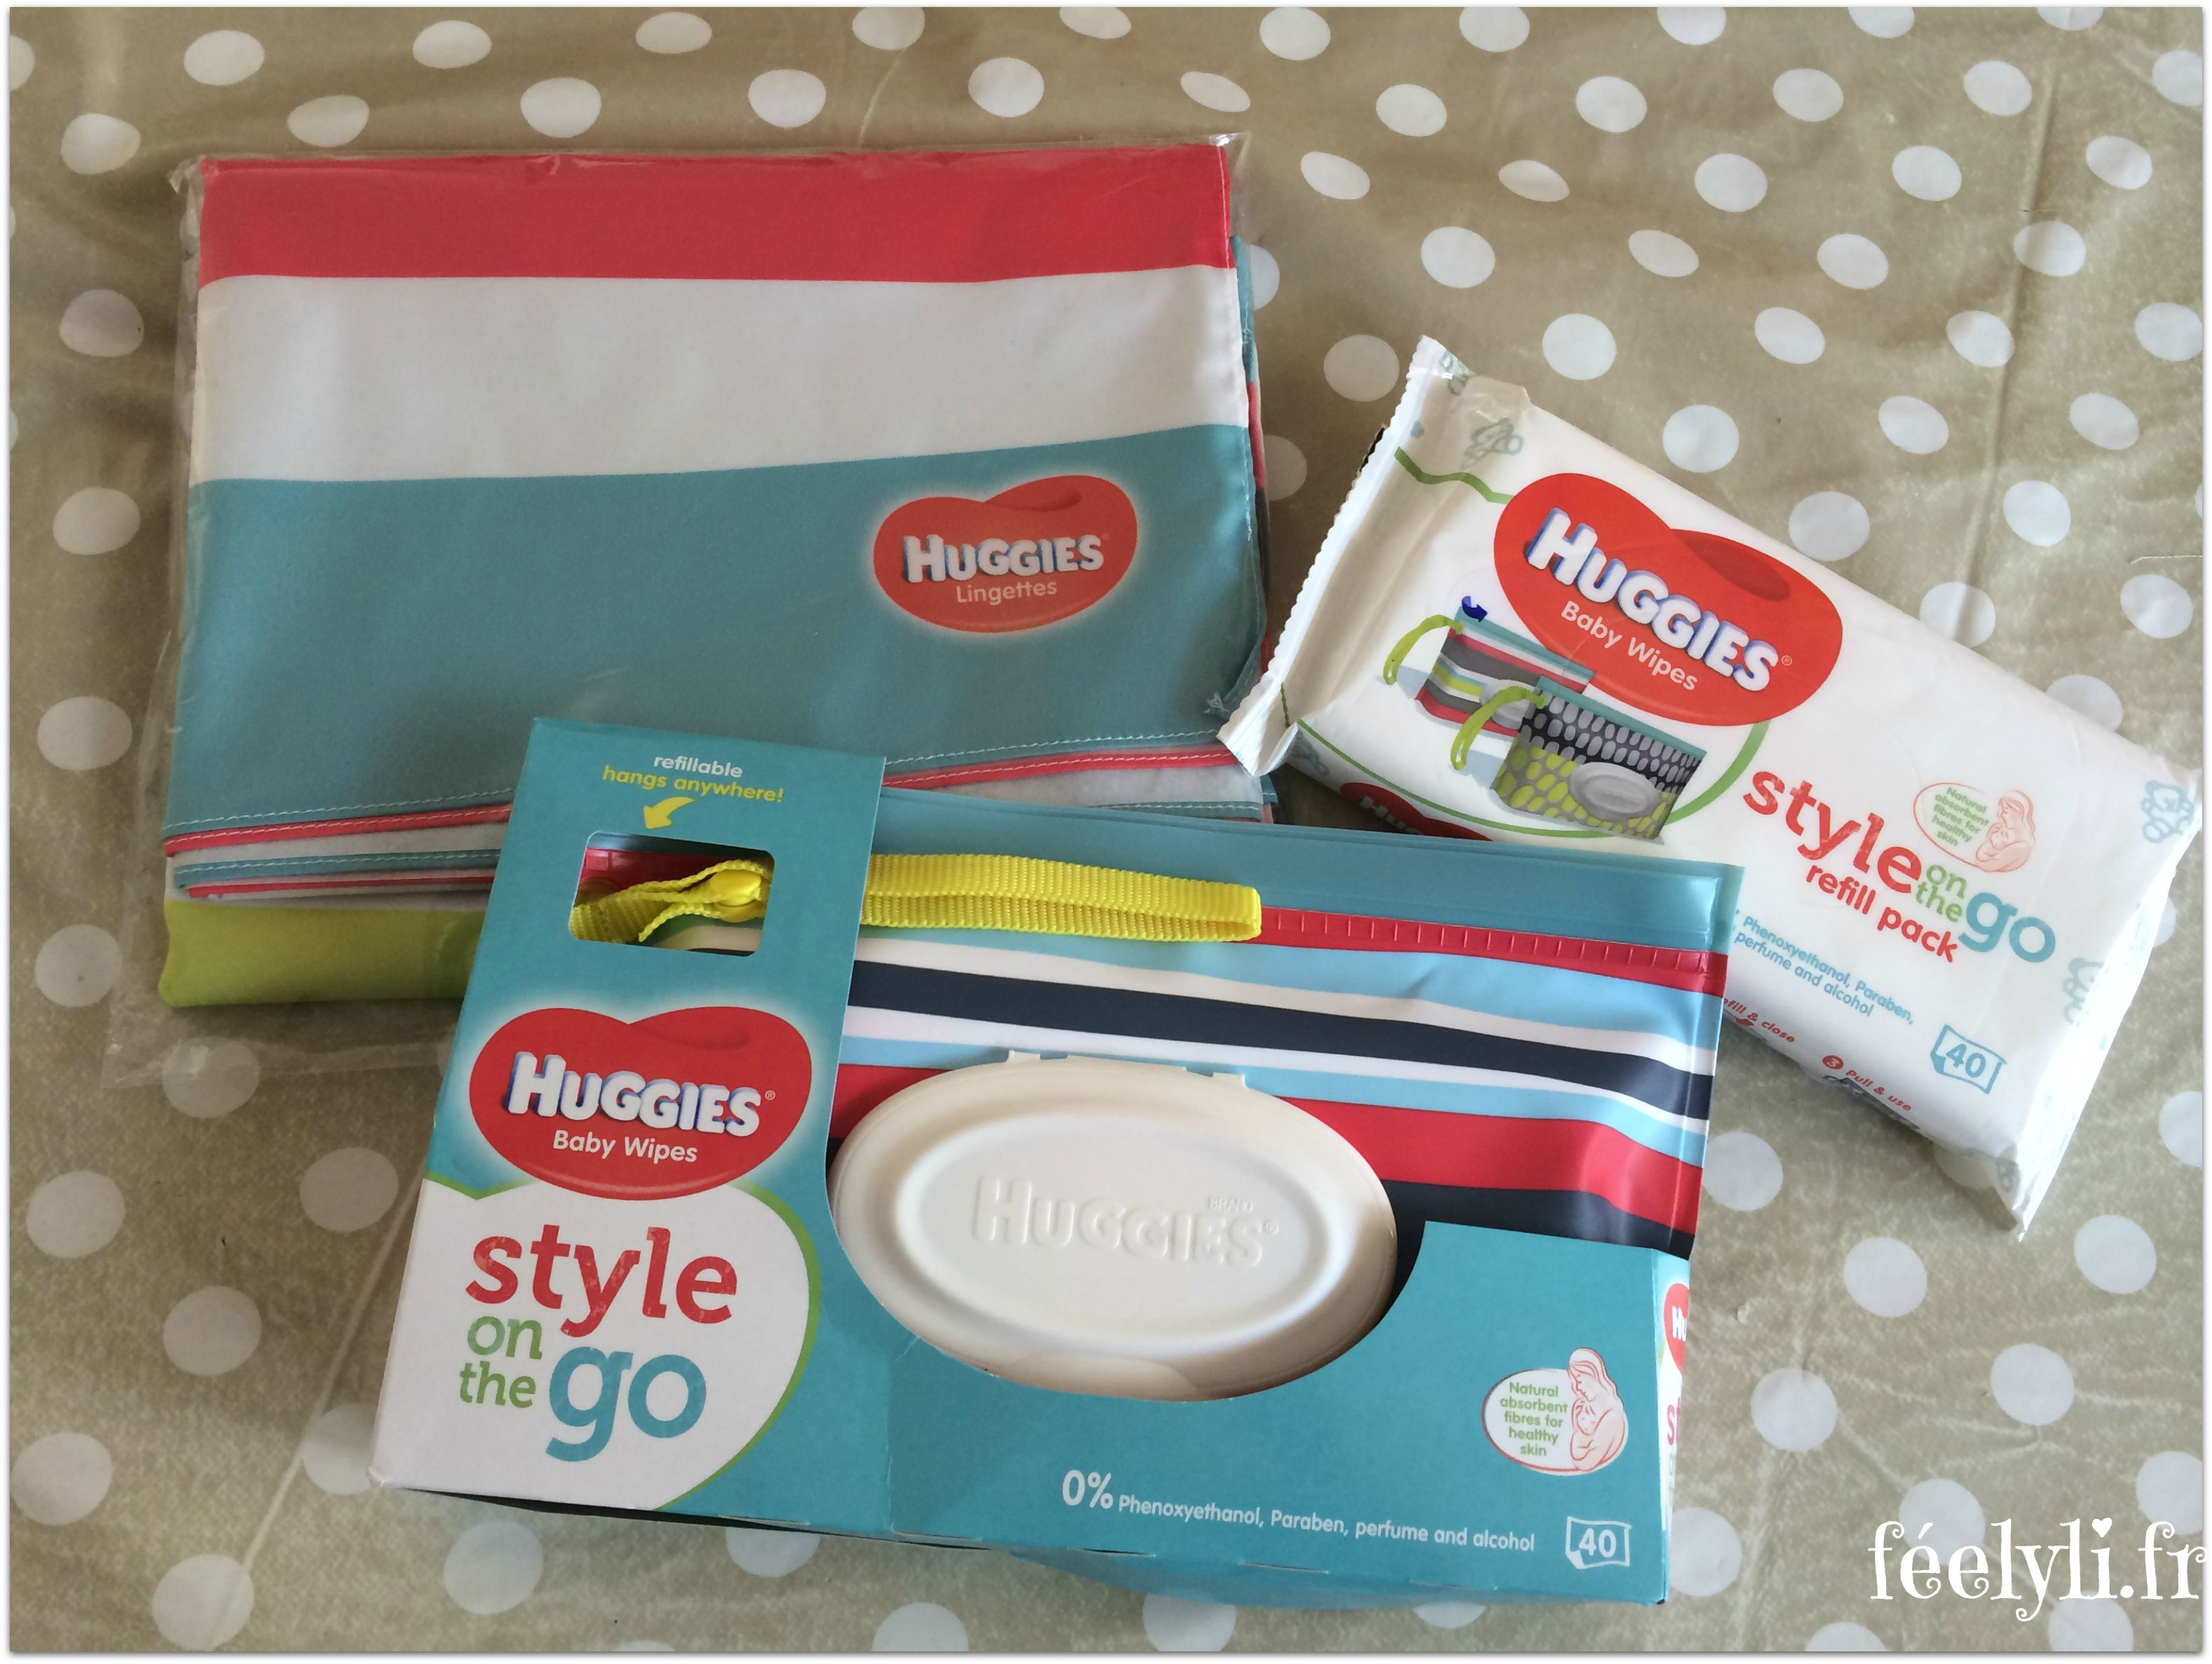 lingettes huggies style